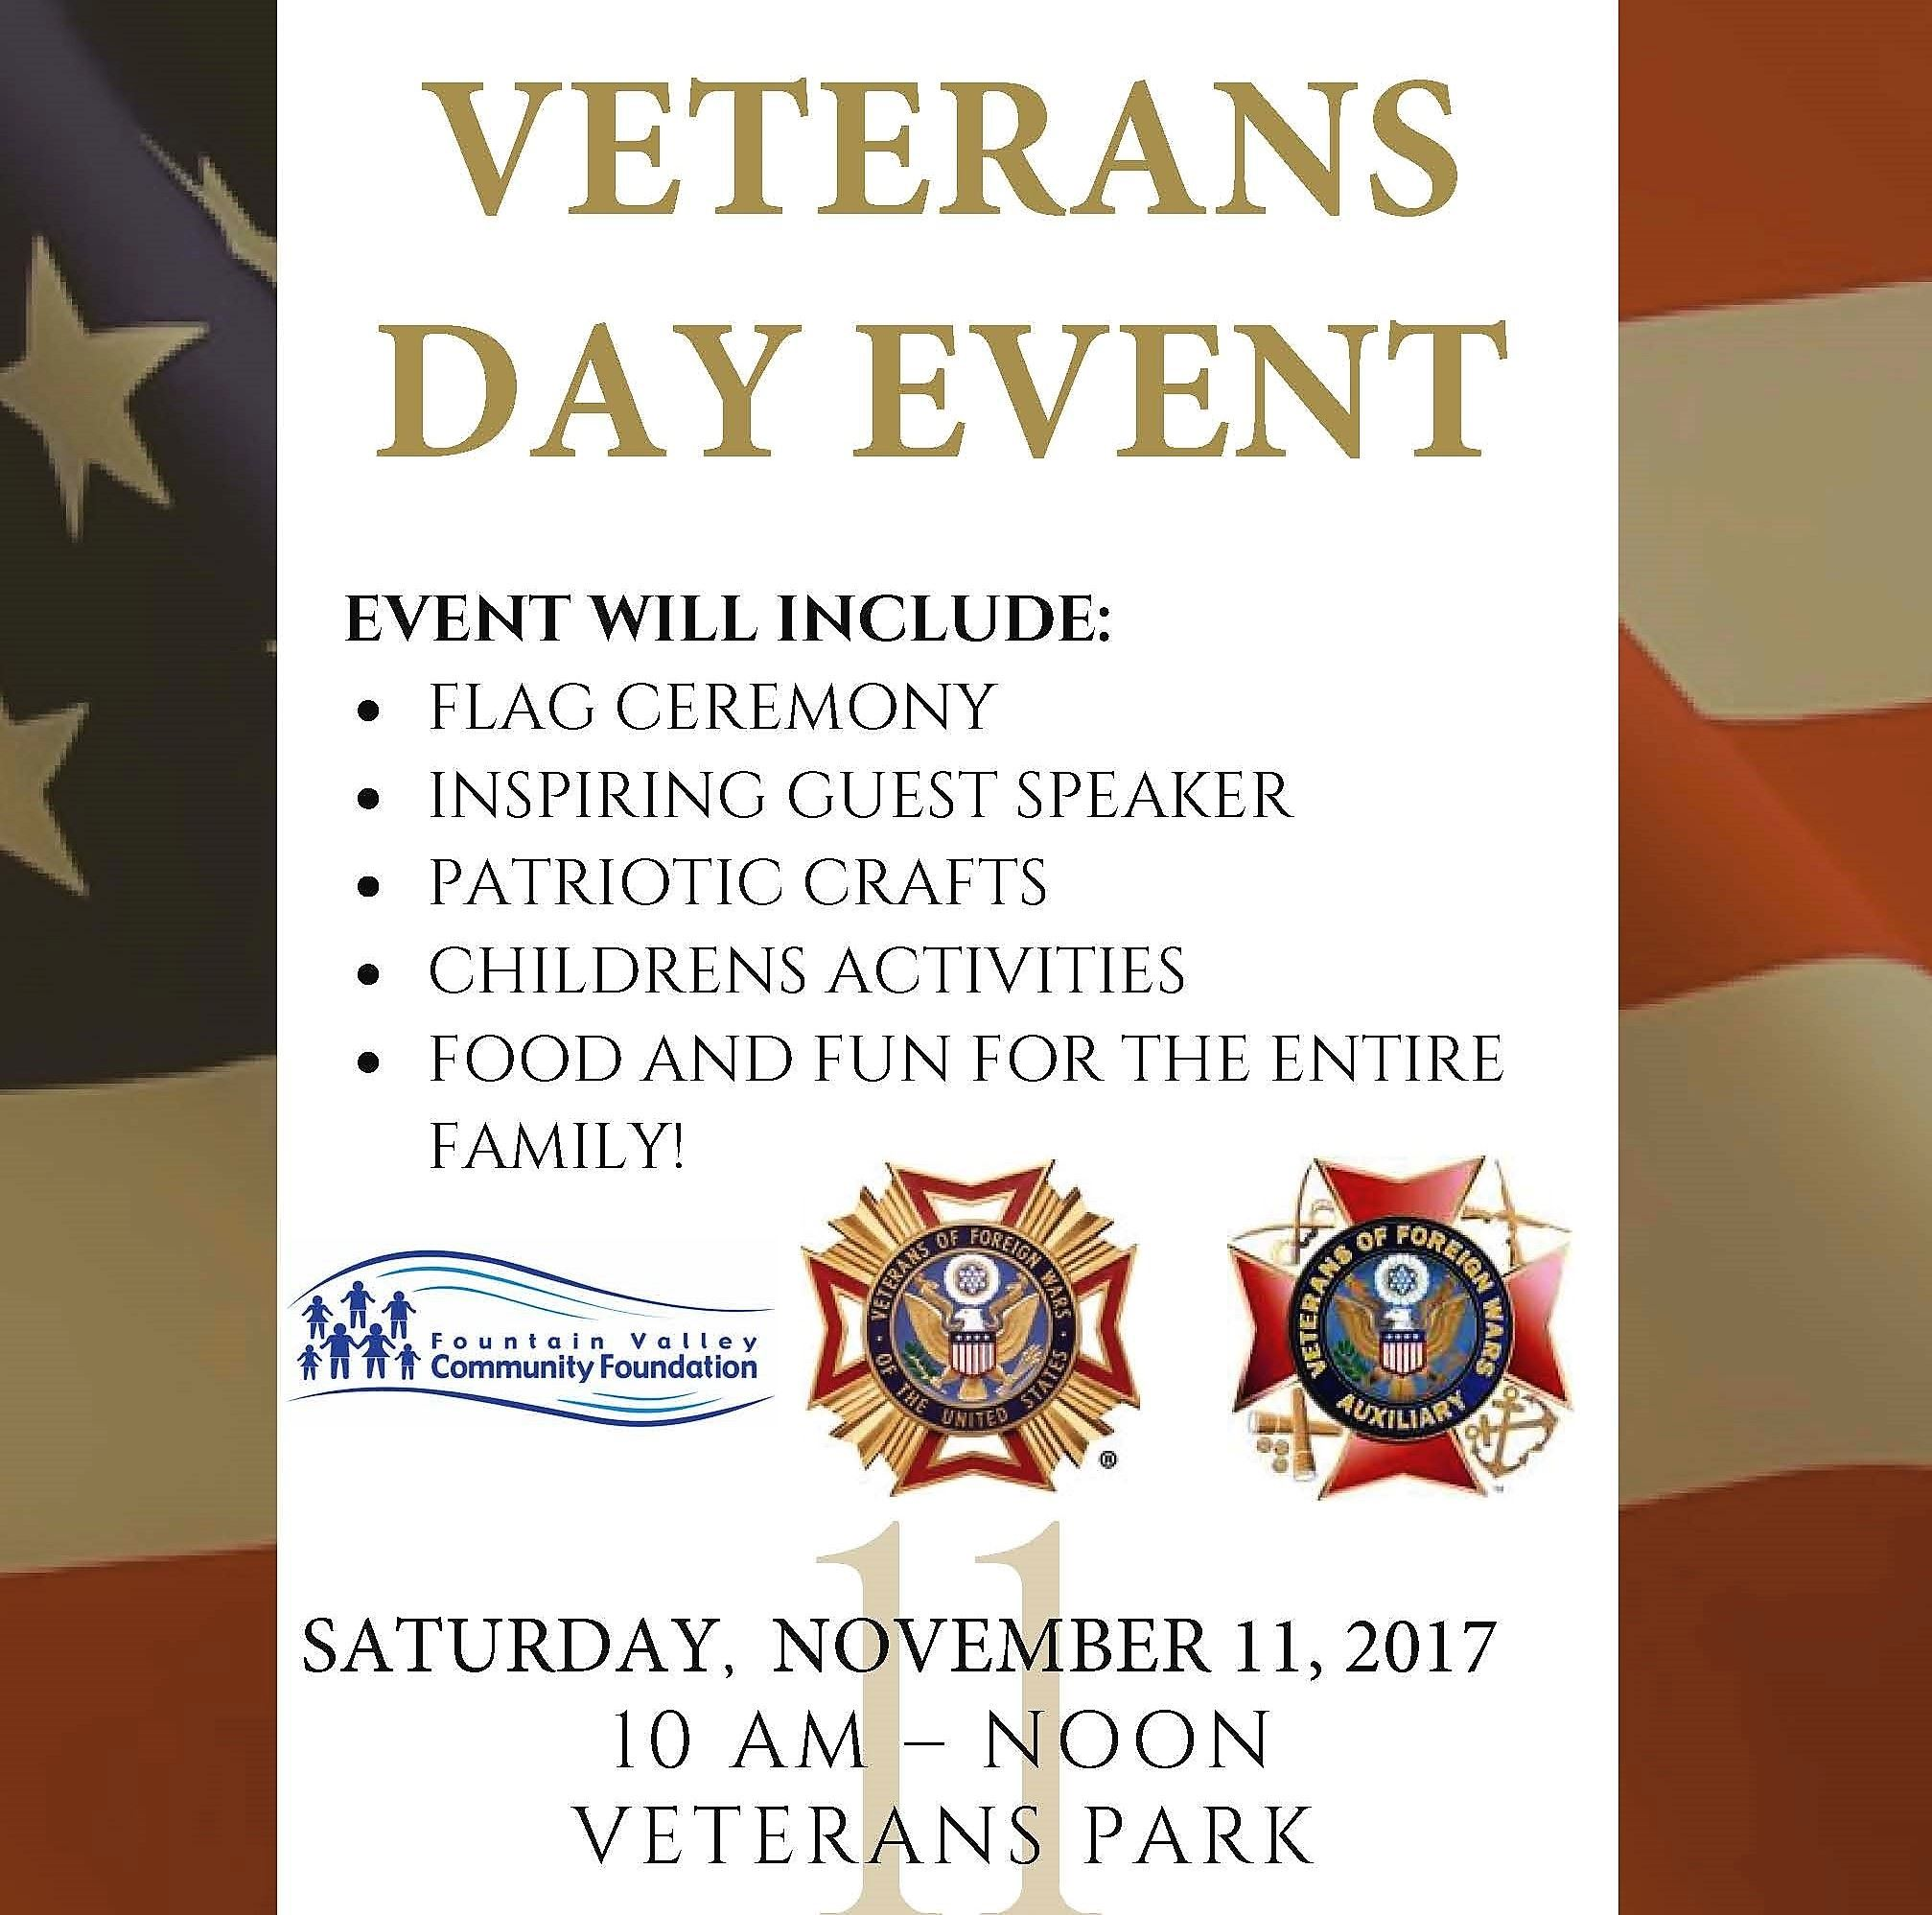 VFW Veterans Day Event Flyer 2017